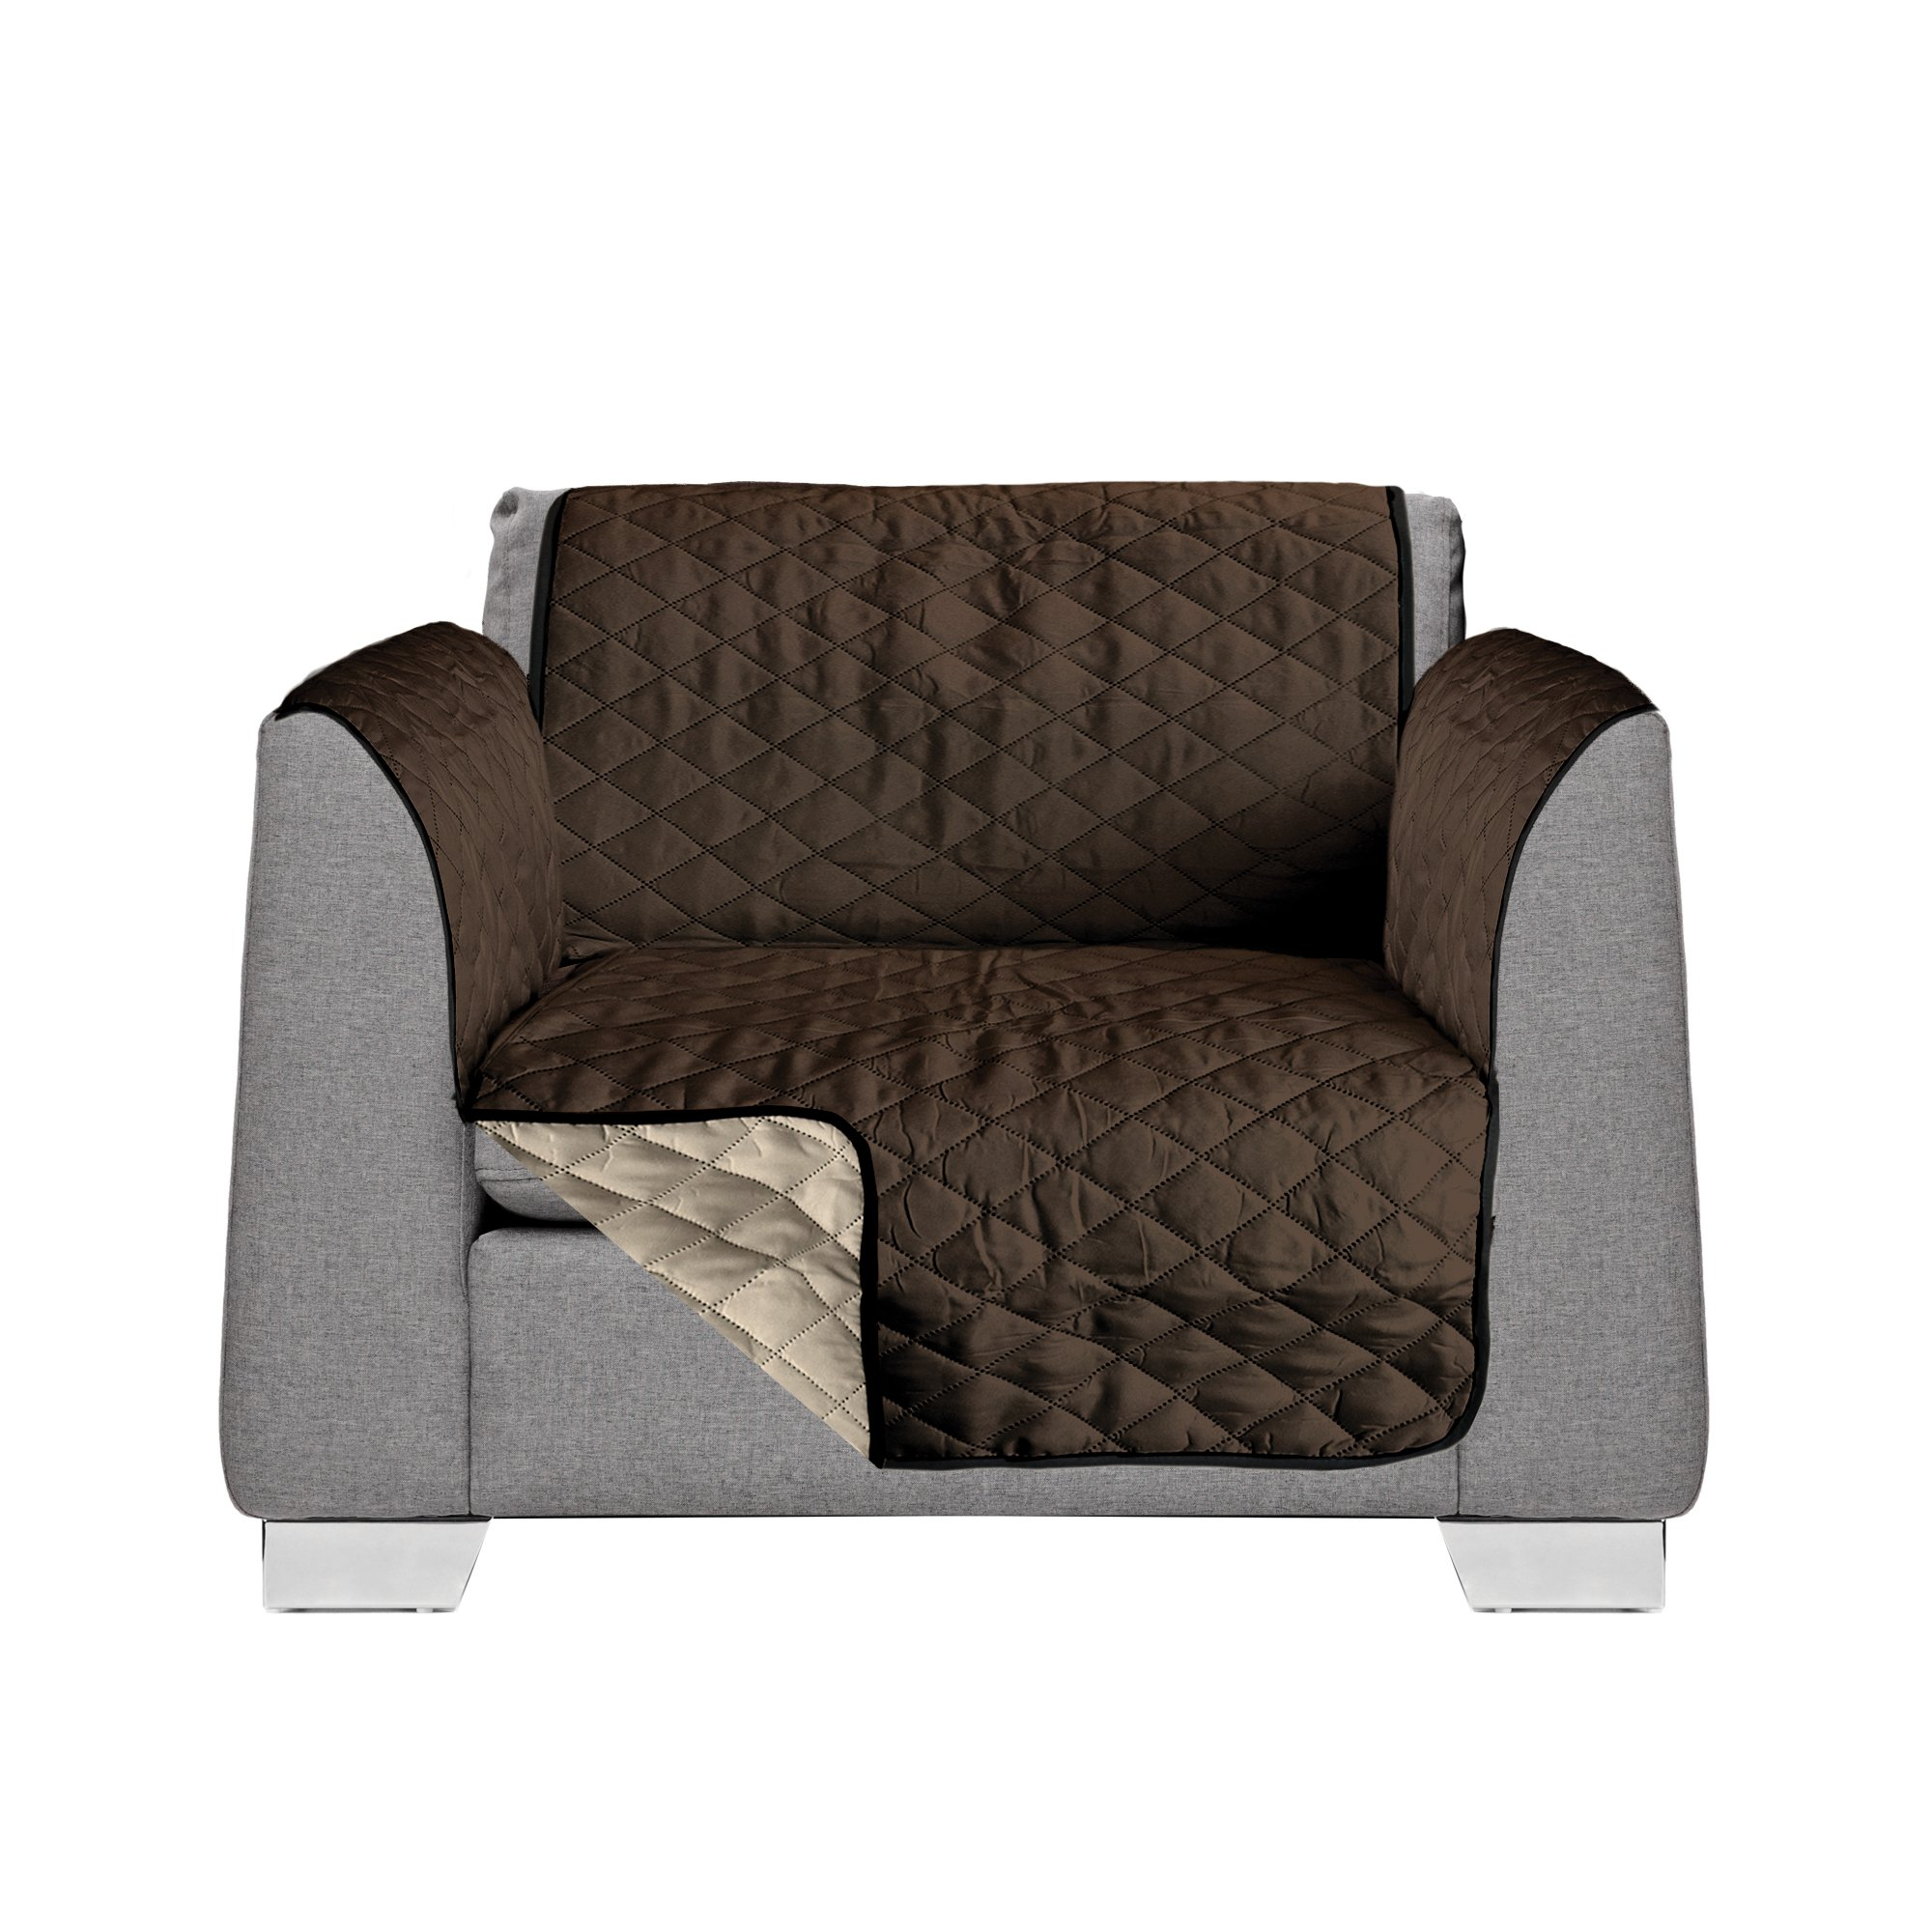 AKC Quilted Pet Chair Cover